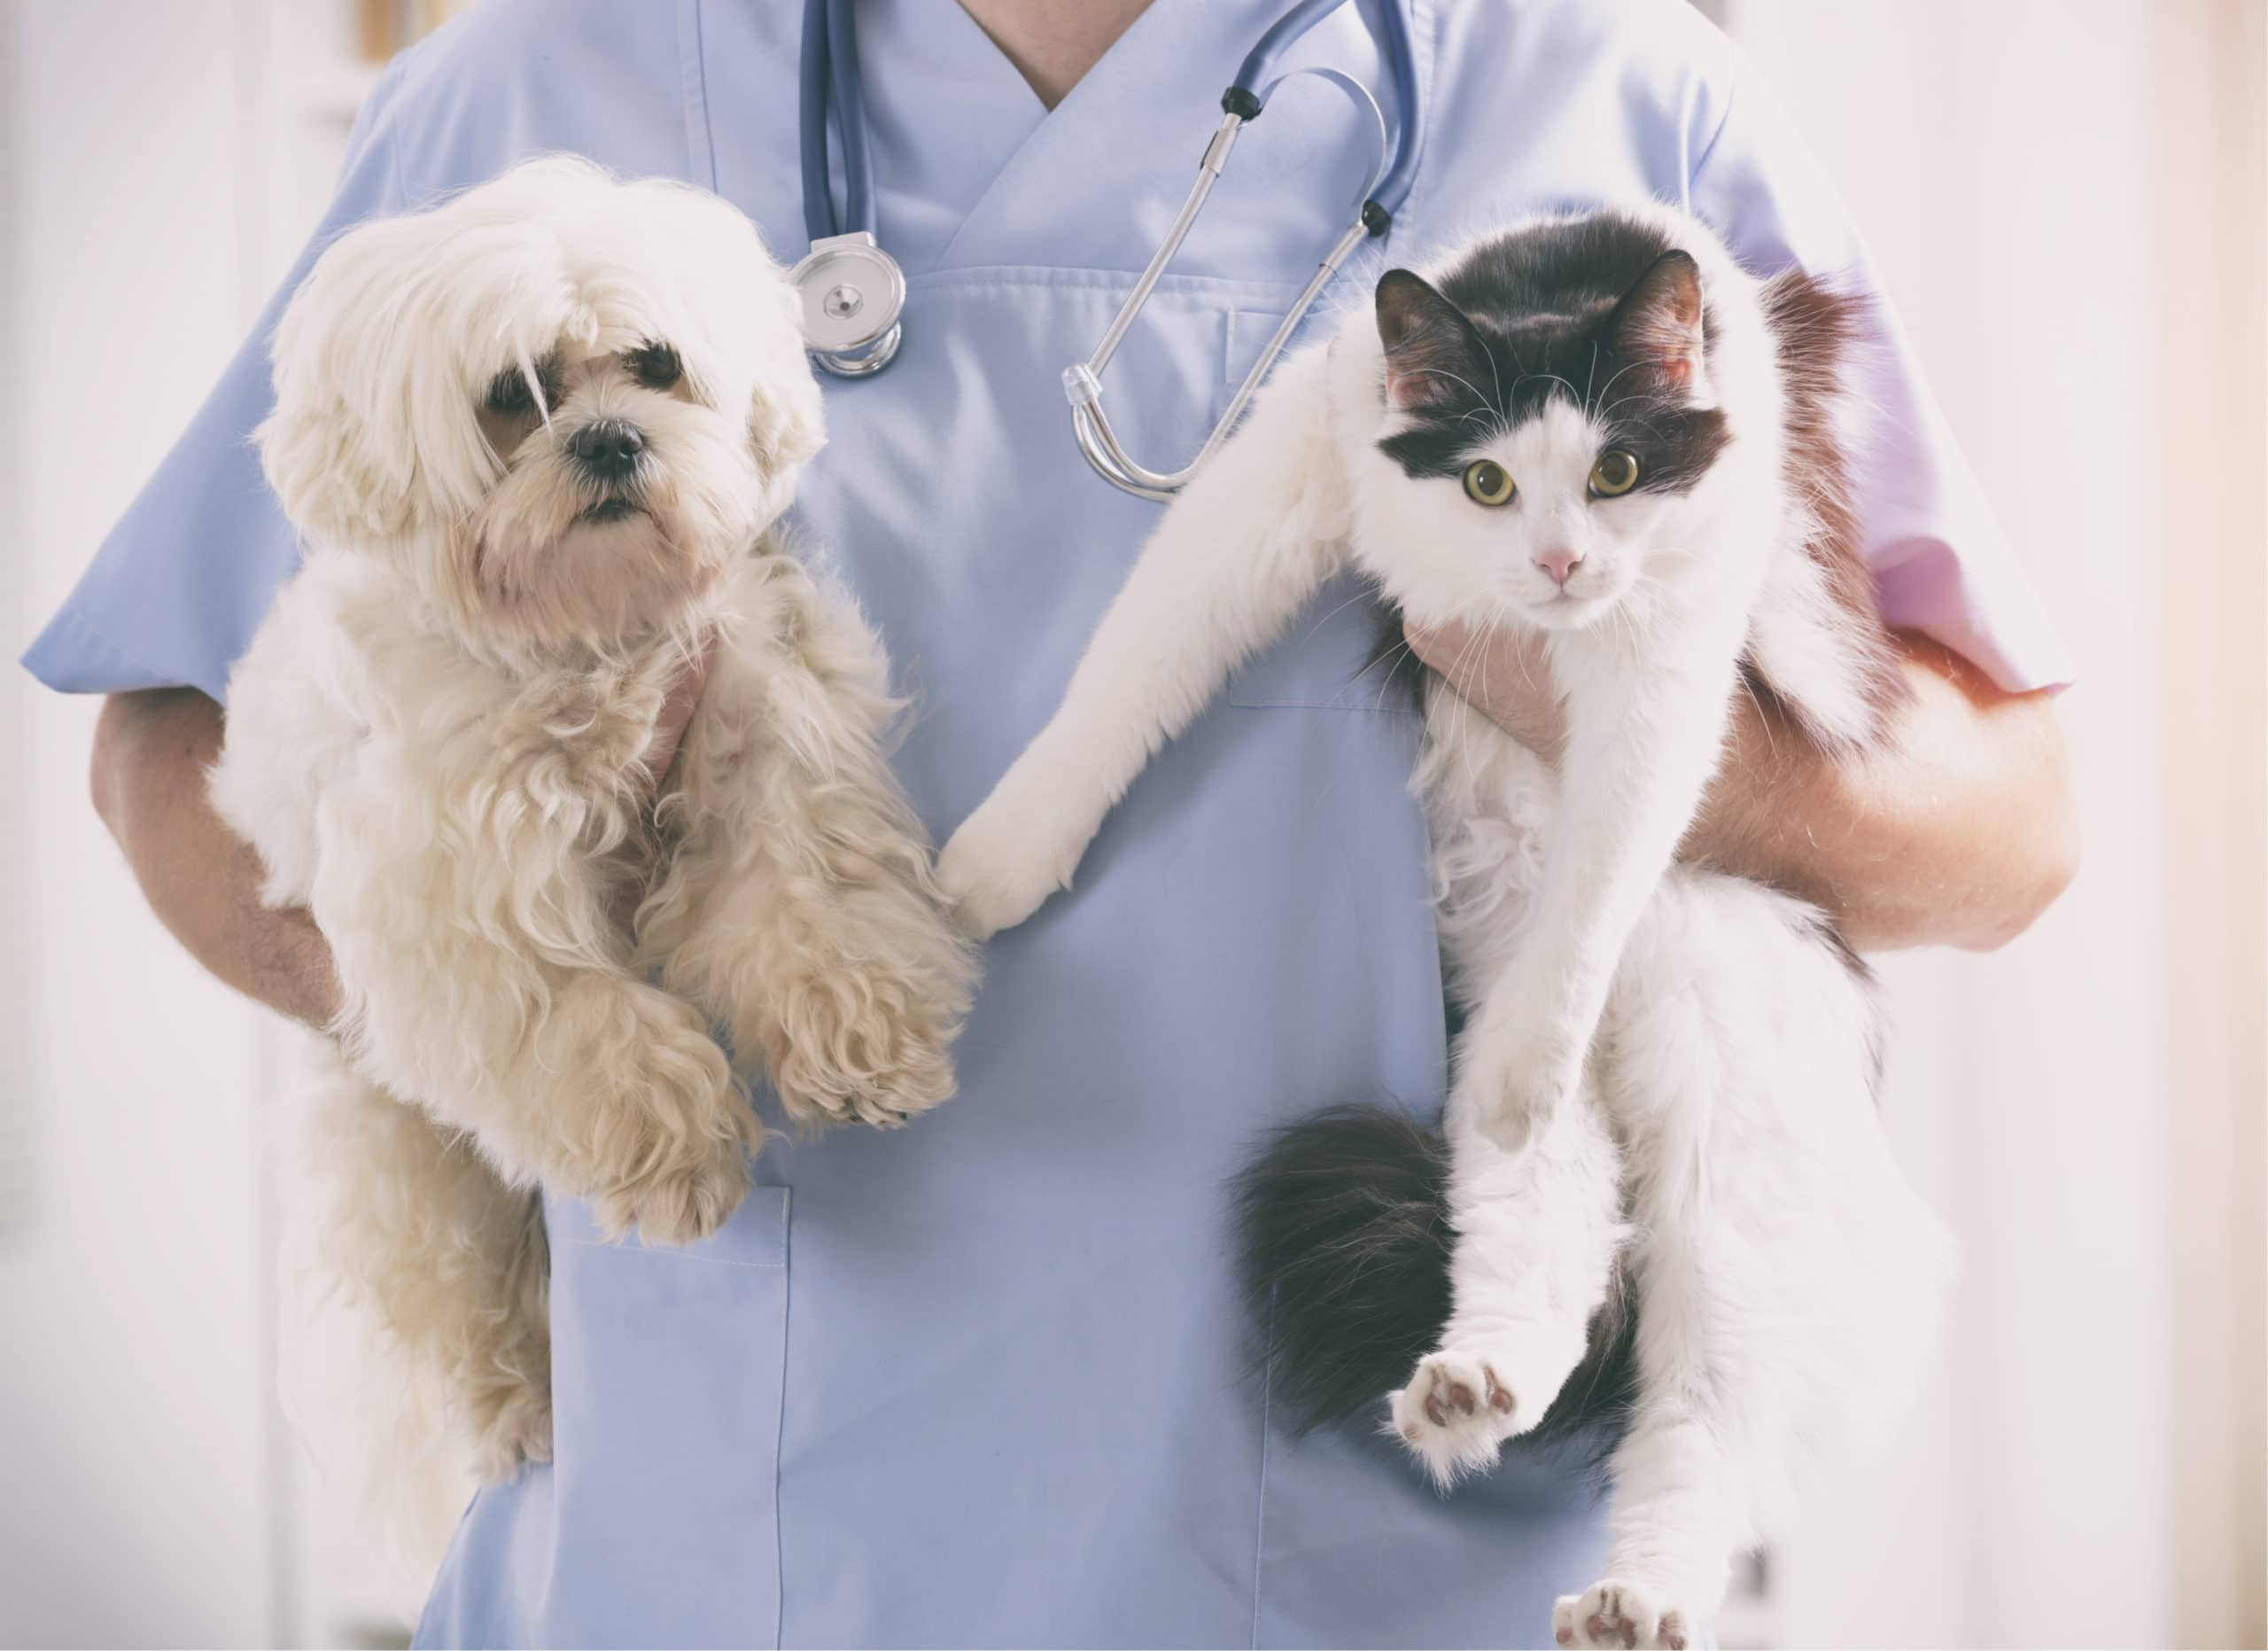 Figo Pet Insurance: Is it the right choice?